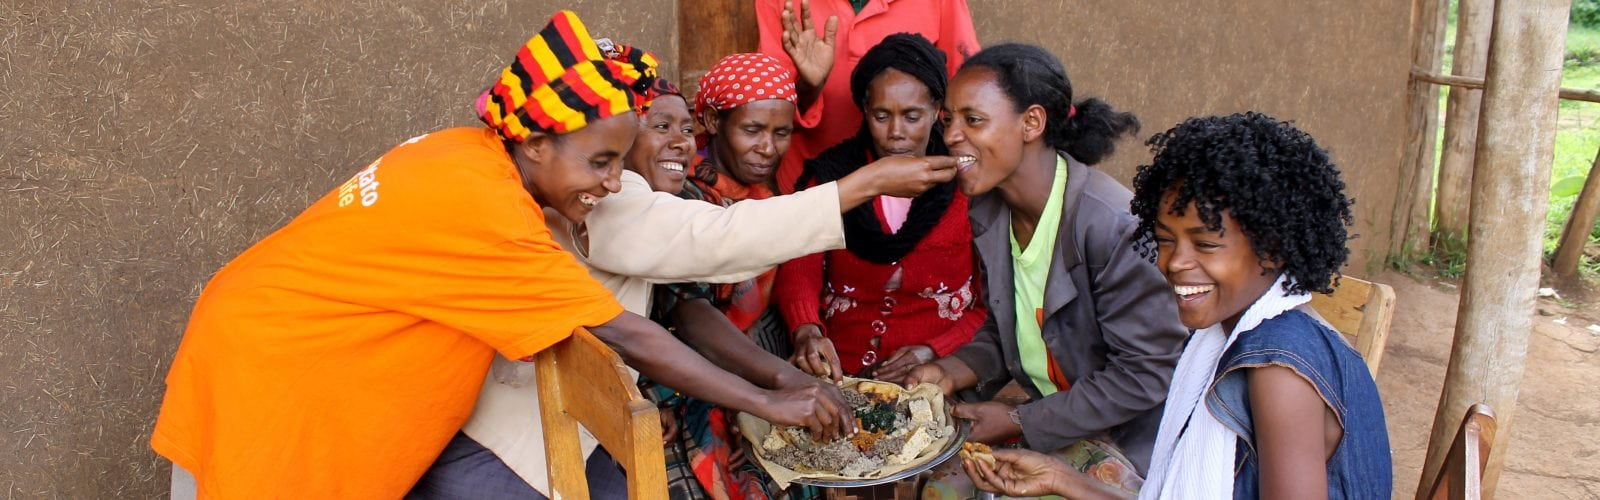 People laughing and eating food together